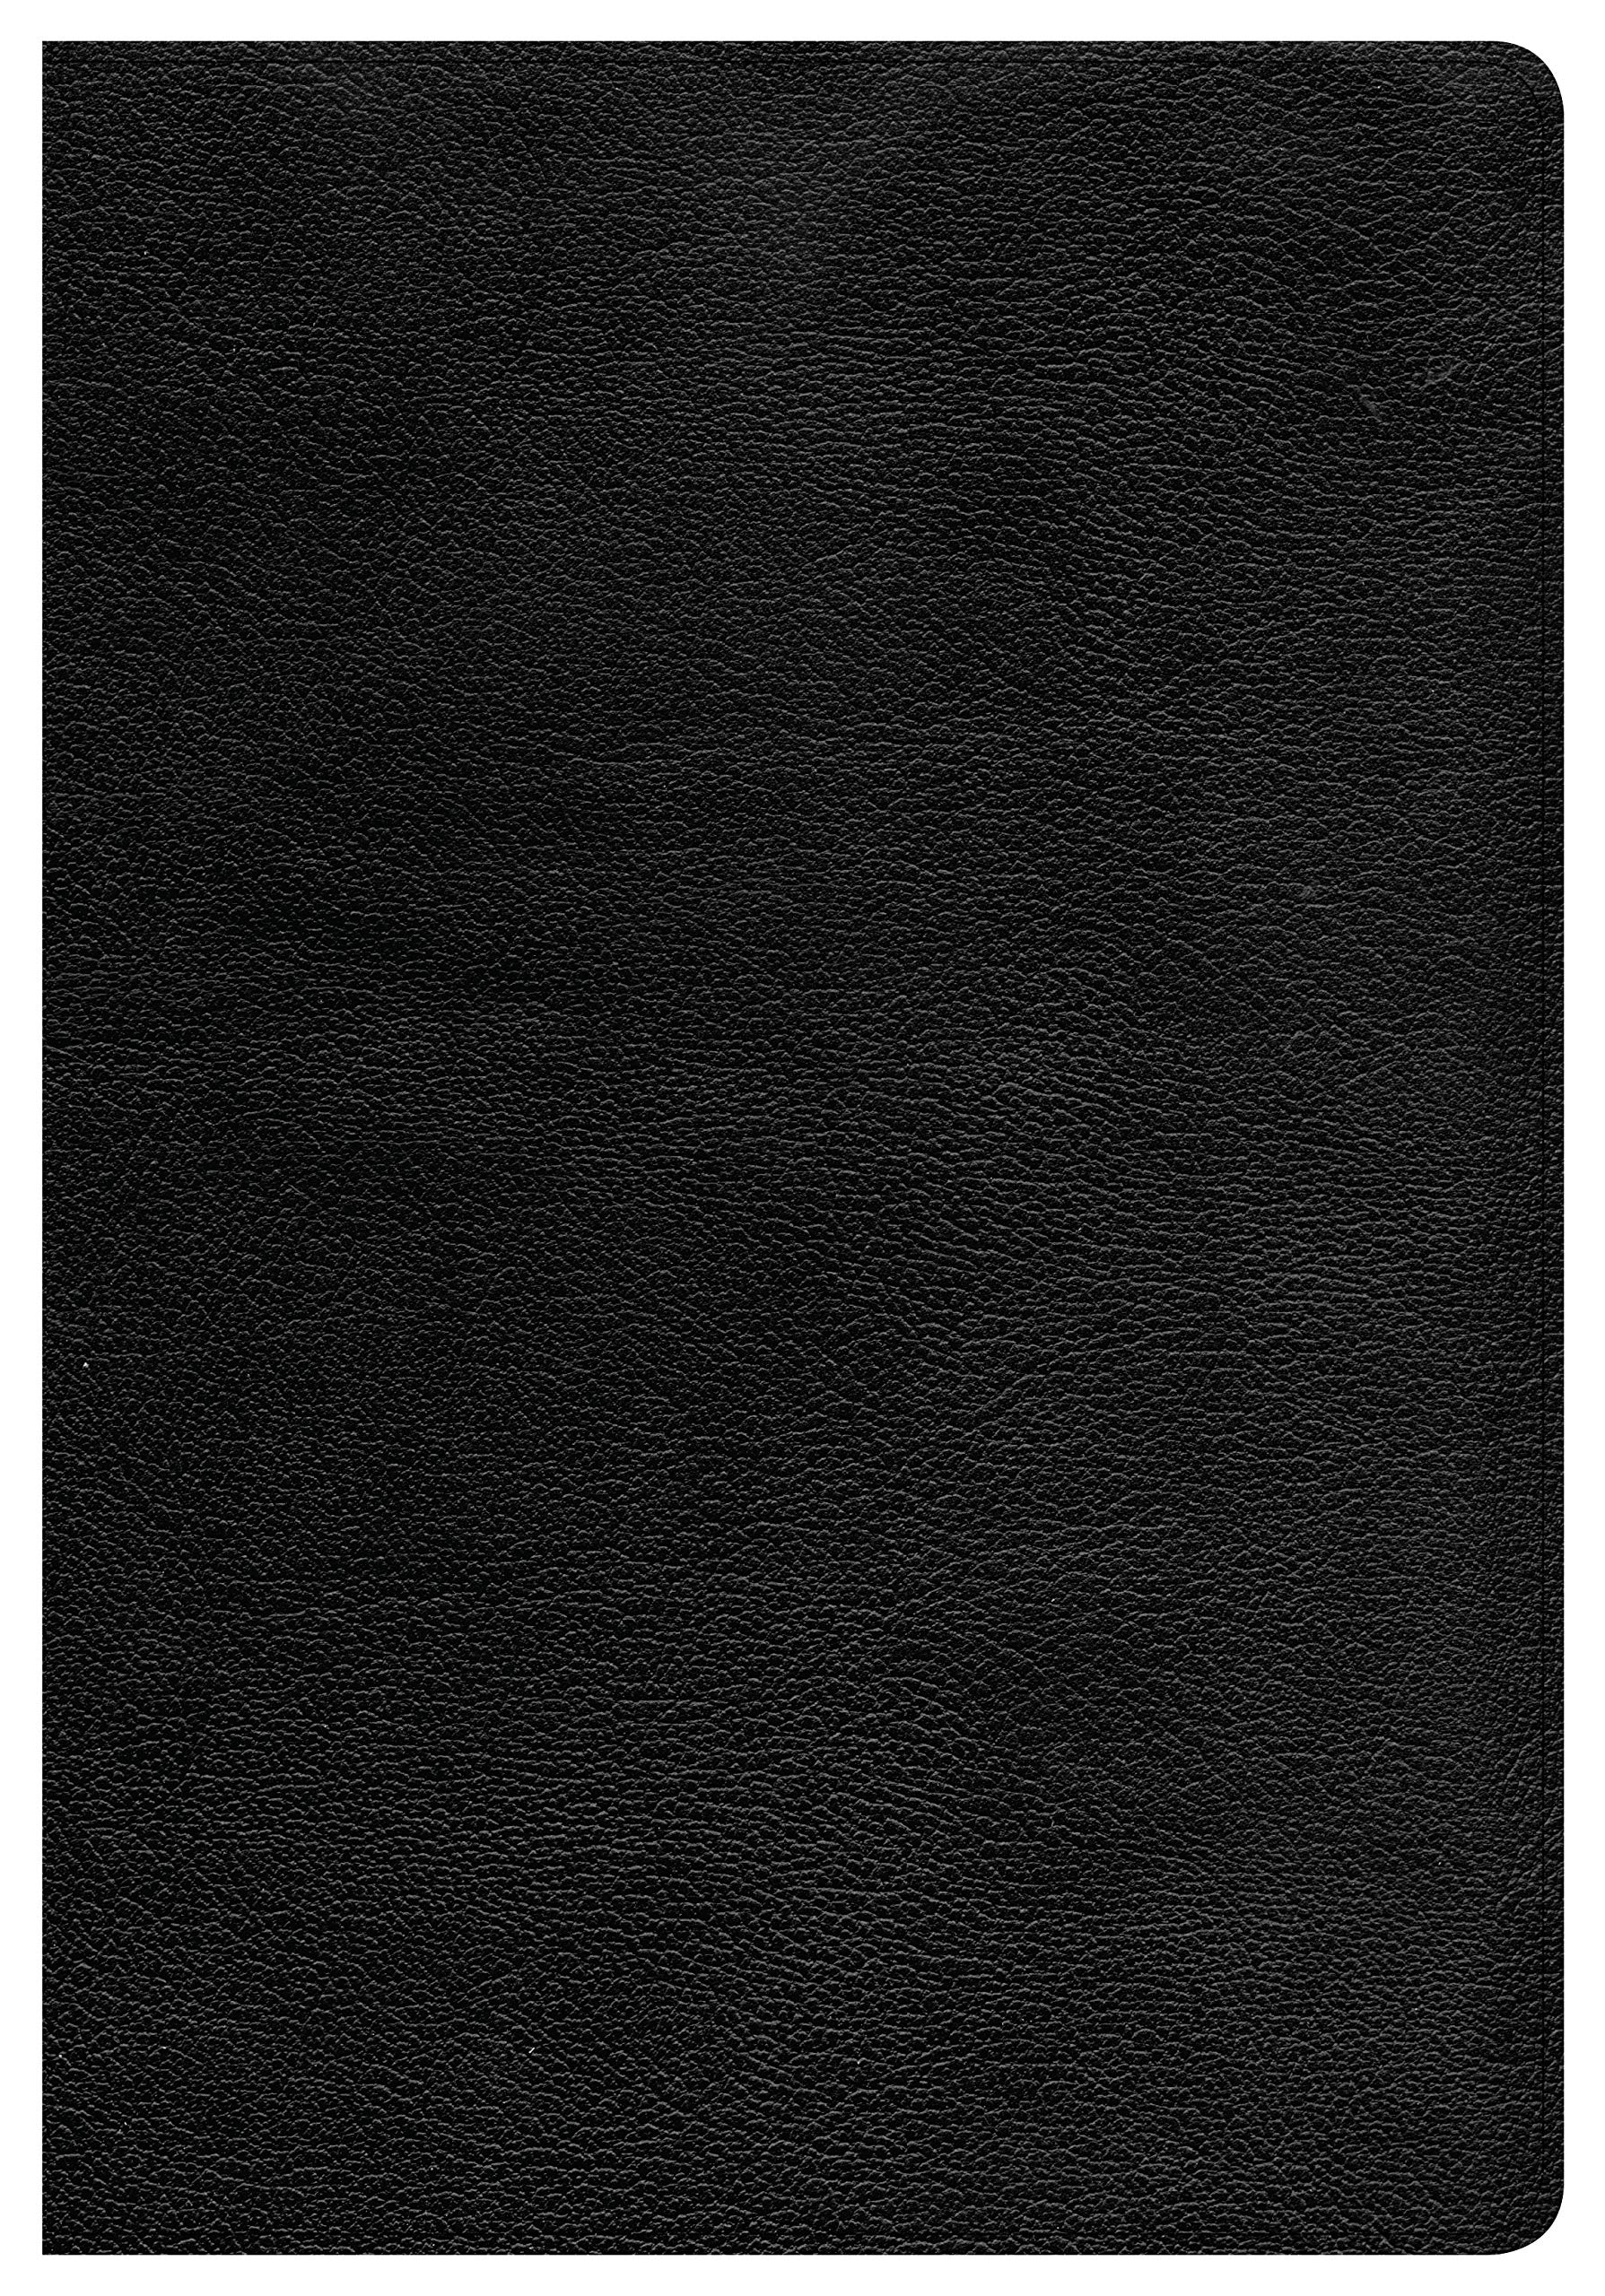 Read Online CSB Super Giant Print Reference Bible, Black Genuine Leather pdf